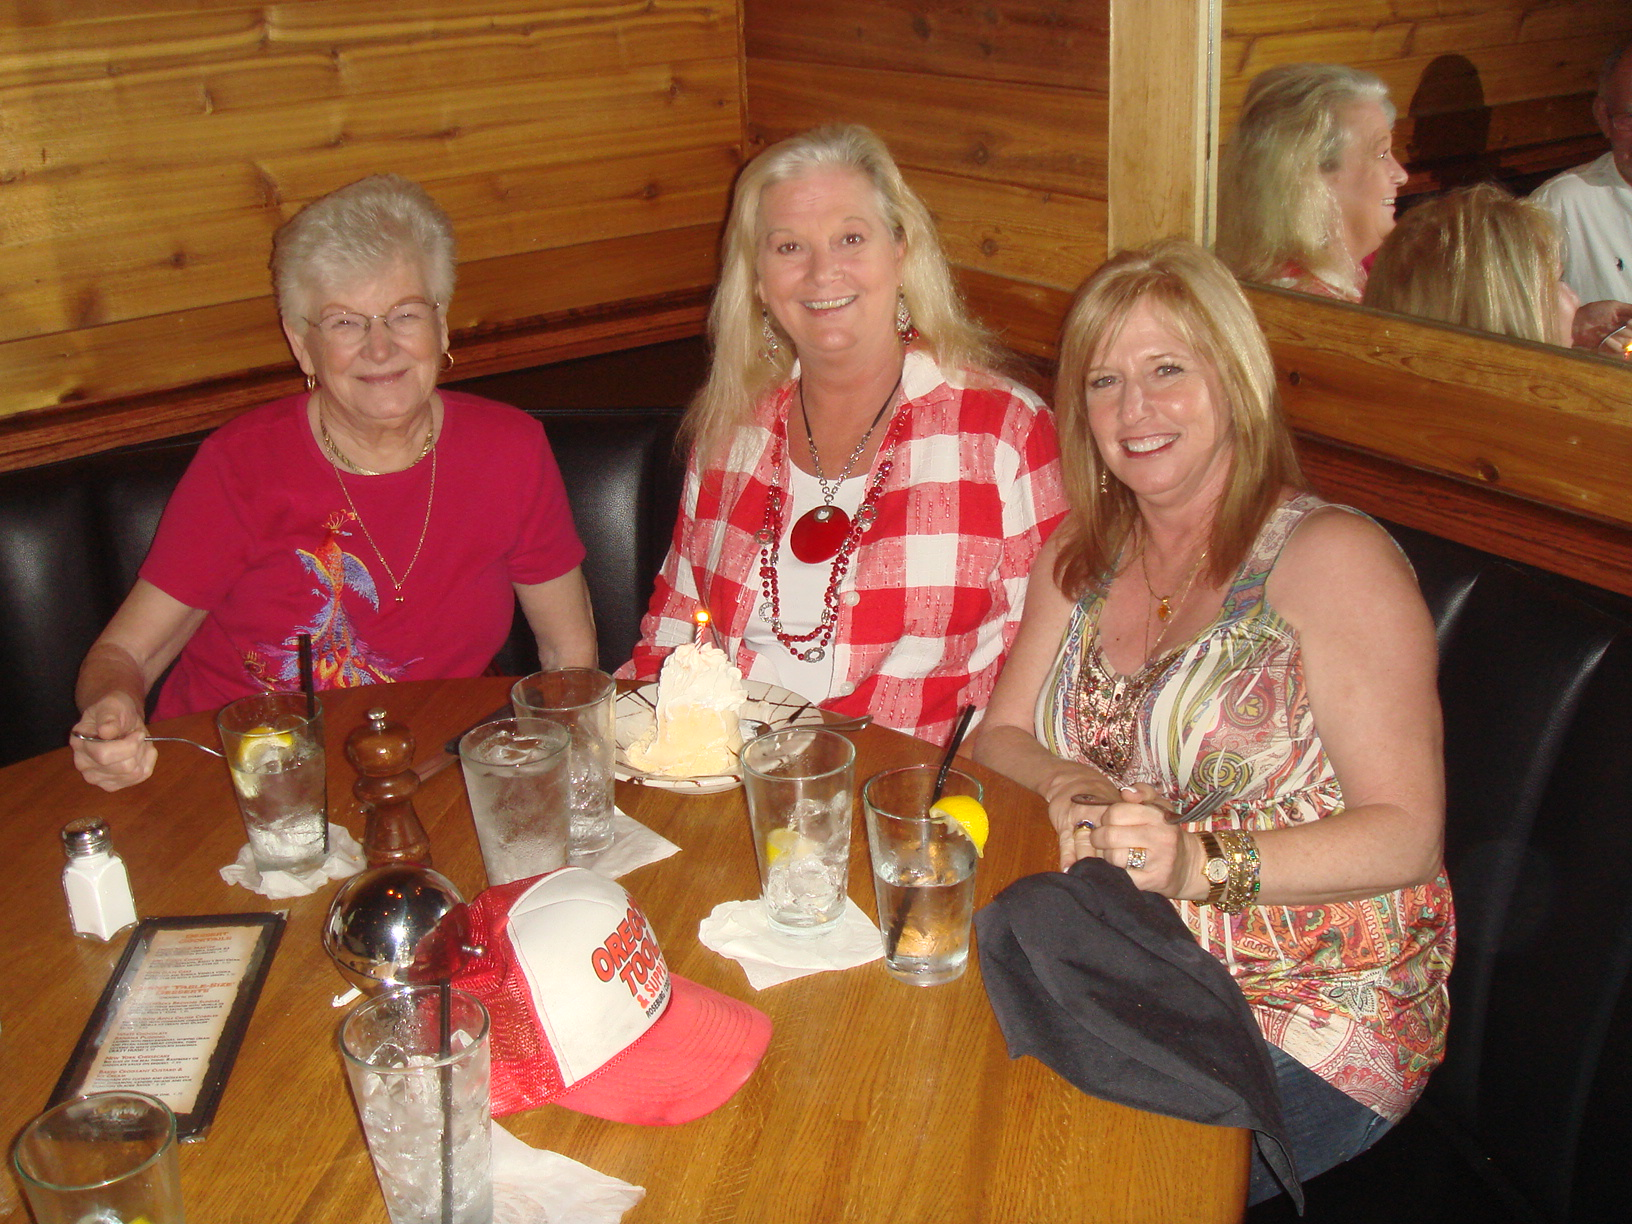 mom-Kathy and daughters